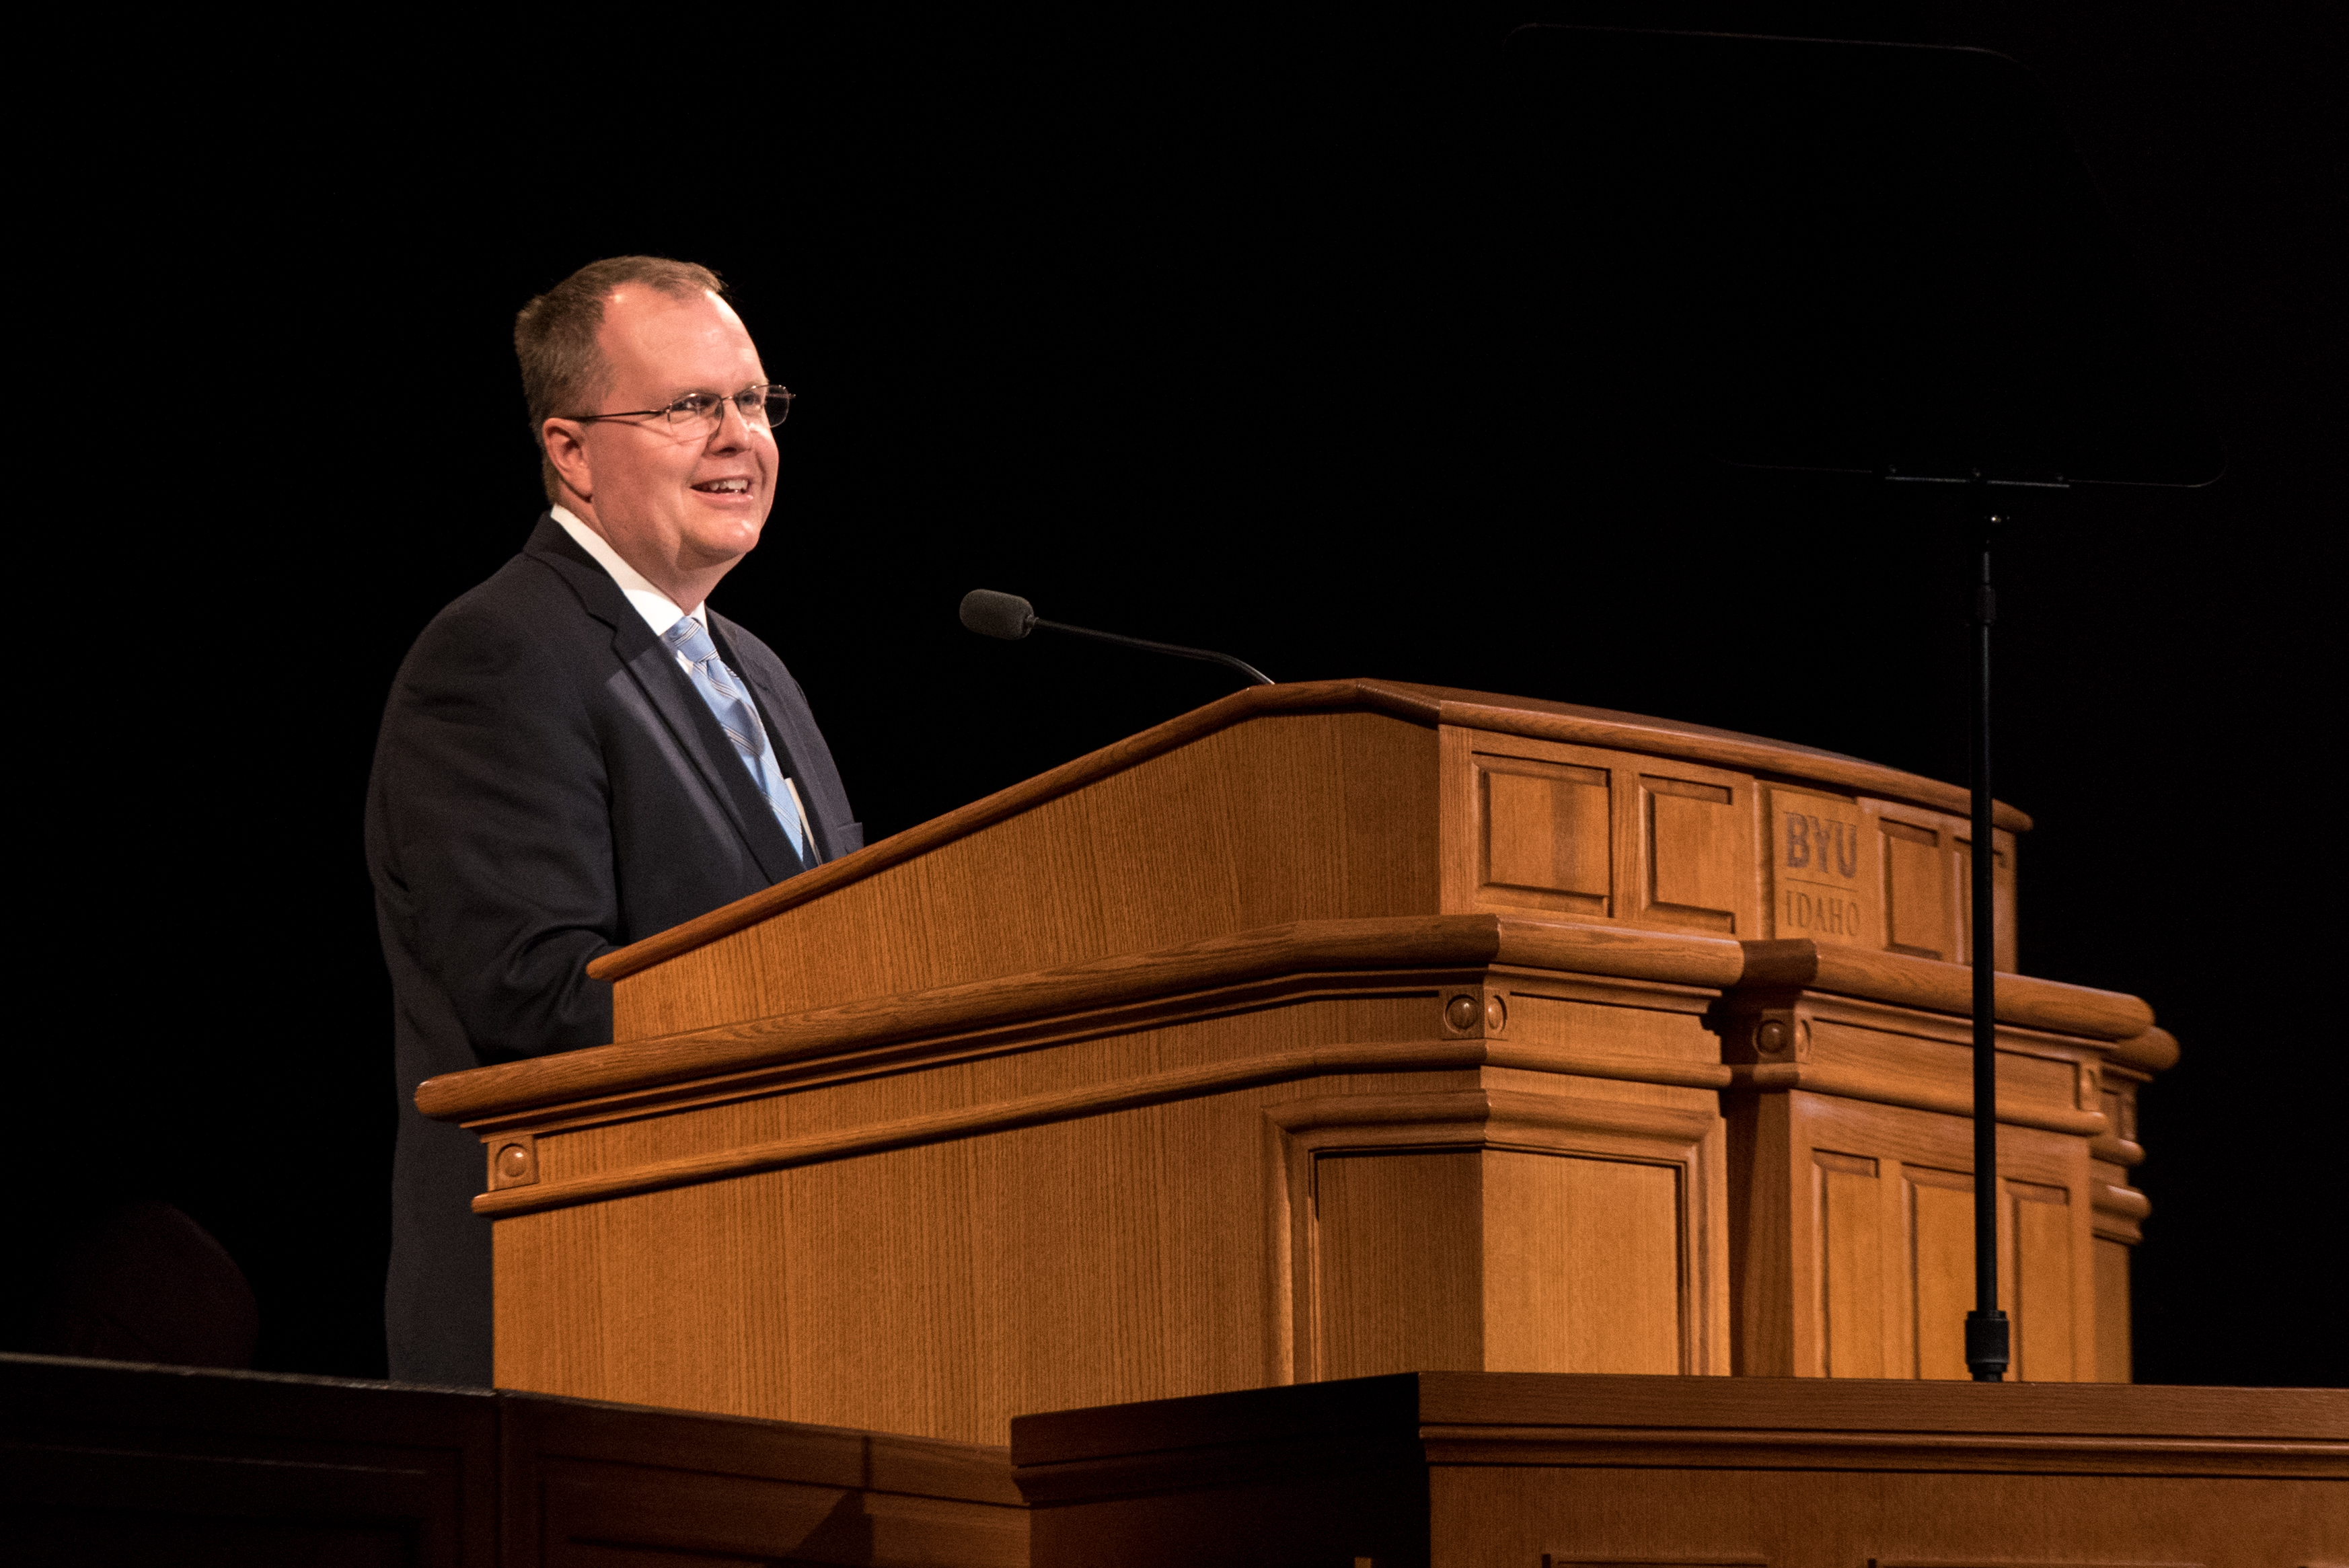 Brother Brian K. Ashton, second counselor in the Sunday School general presidency, speaks at a BYU Idaho devotional on Feb. 12.